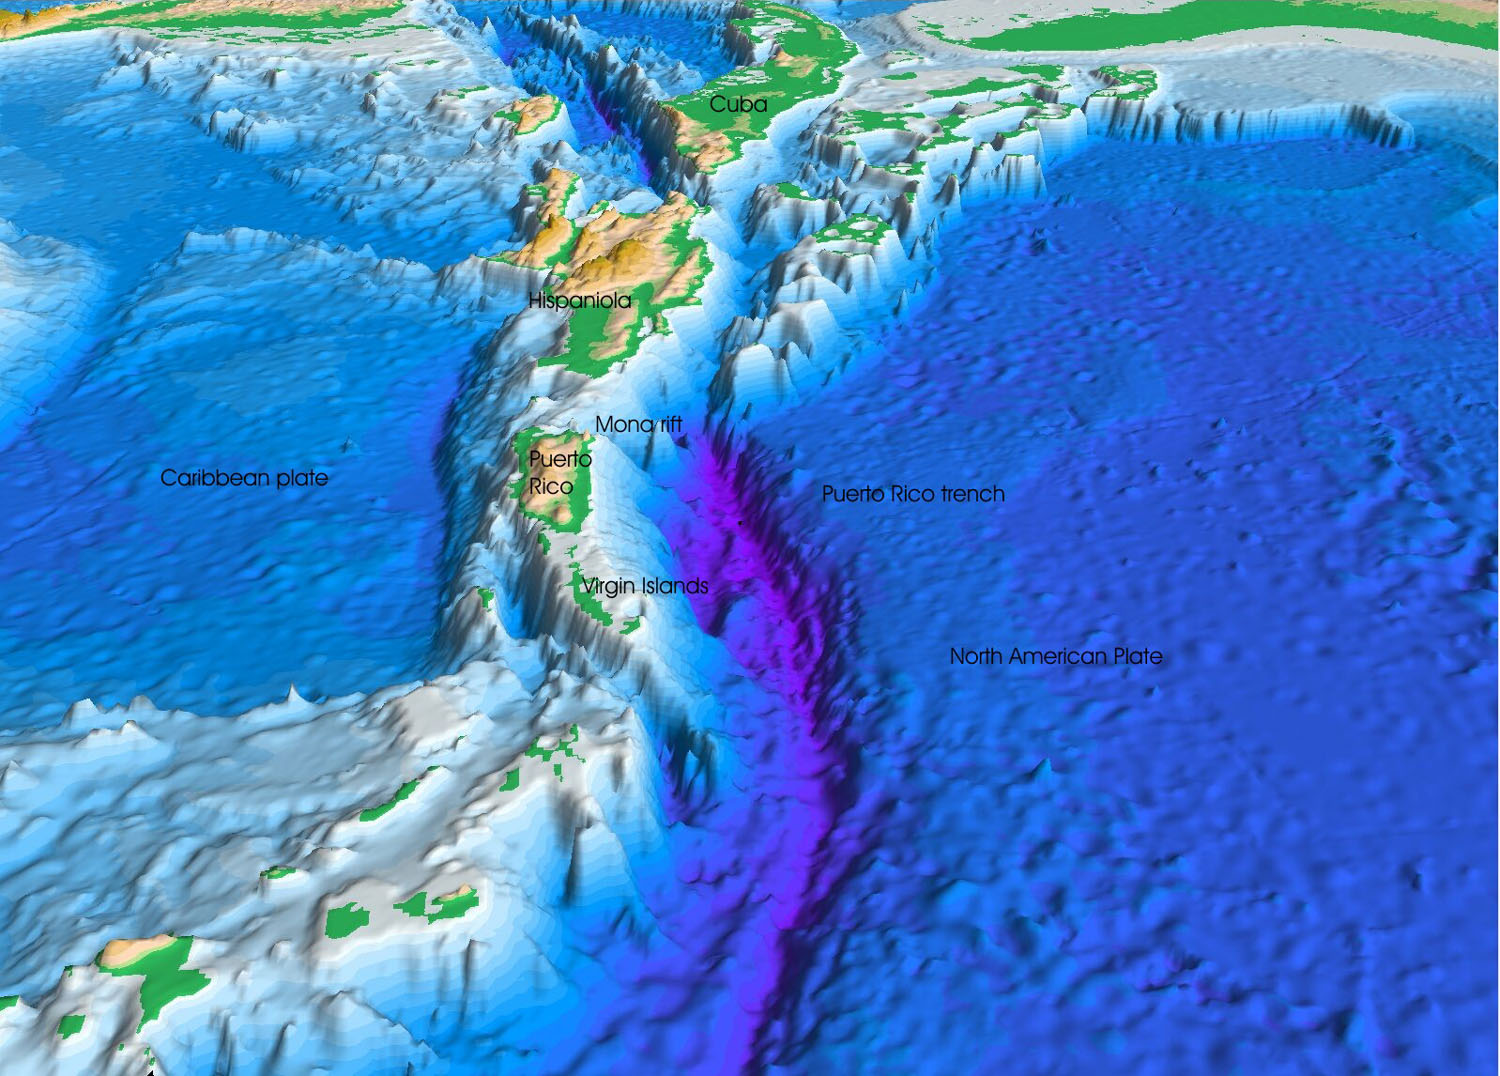 Perspective view of the sea floor of the Atlantic Ocean and the Caribbean Sea. The Lesser Antilles are on the lower left side of the view and Florida is on the upper right. The purple sea floor at the center of the view is the Puerto Rico trench, the deepest part of the Atlantic Ocean and the Caribbean Sea.